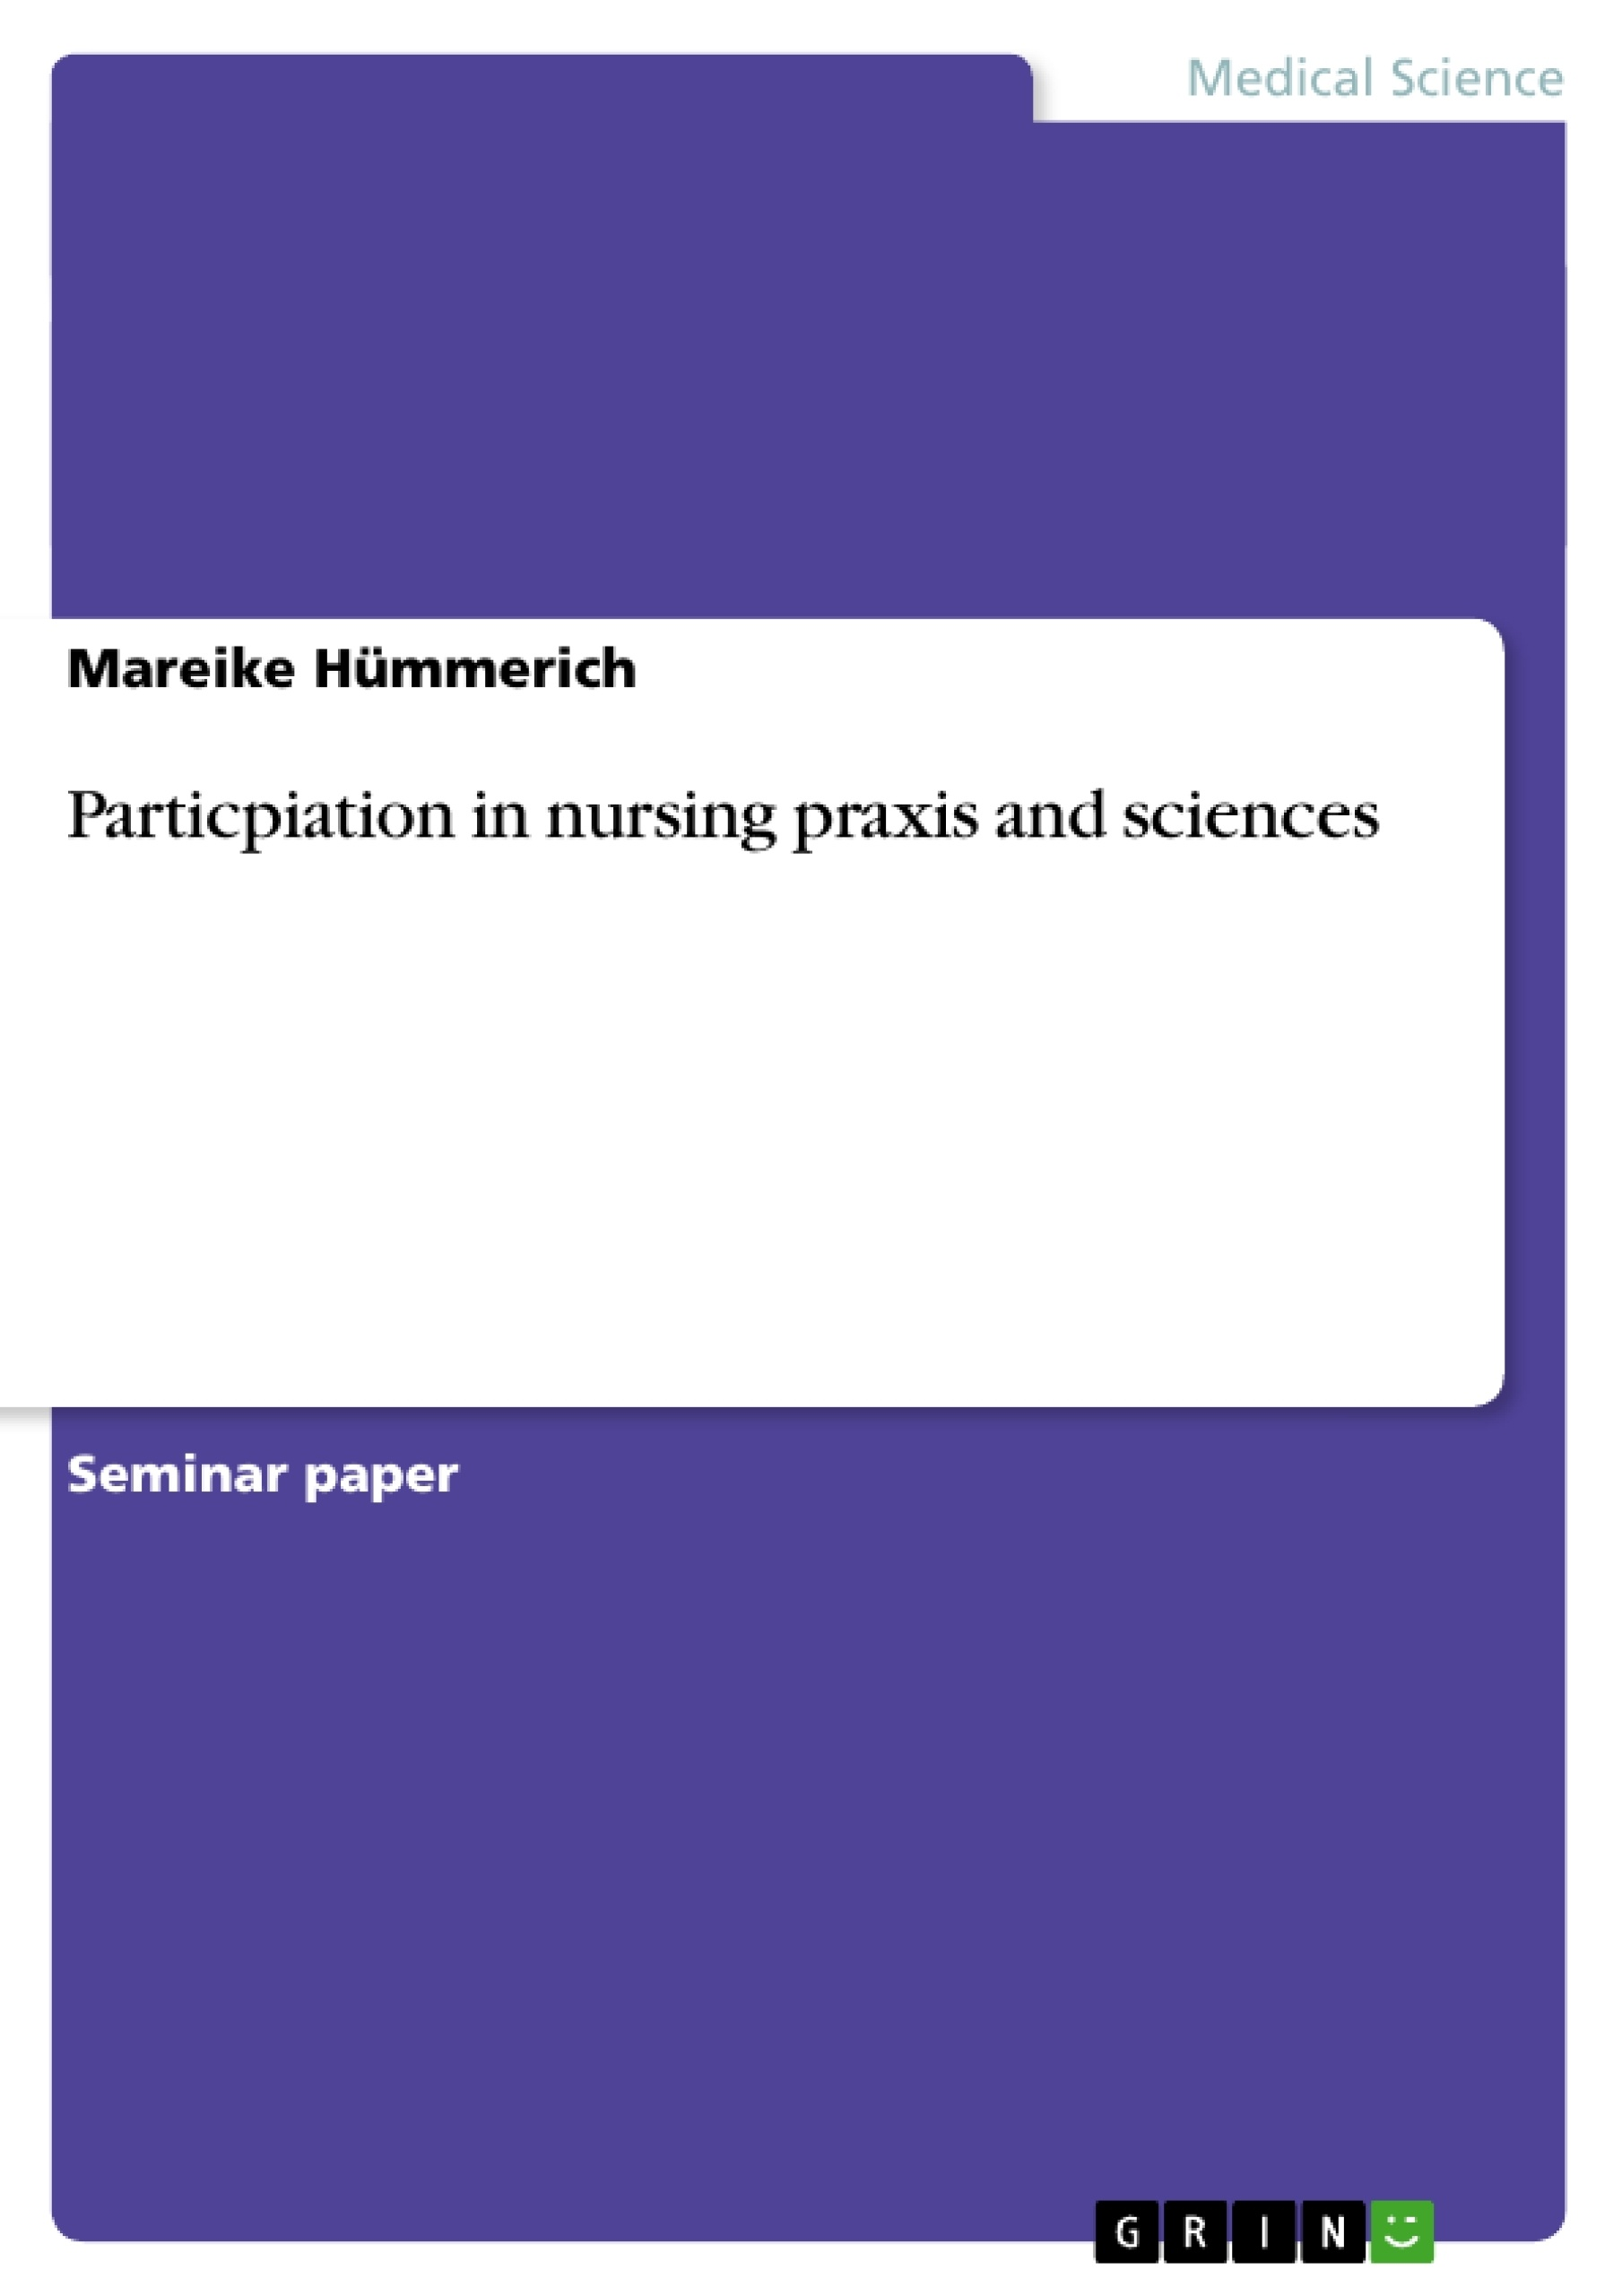 Title: Particpiation in nursing praxis and sciences